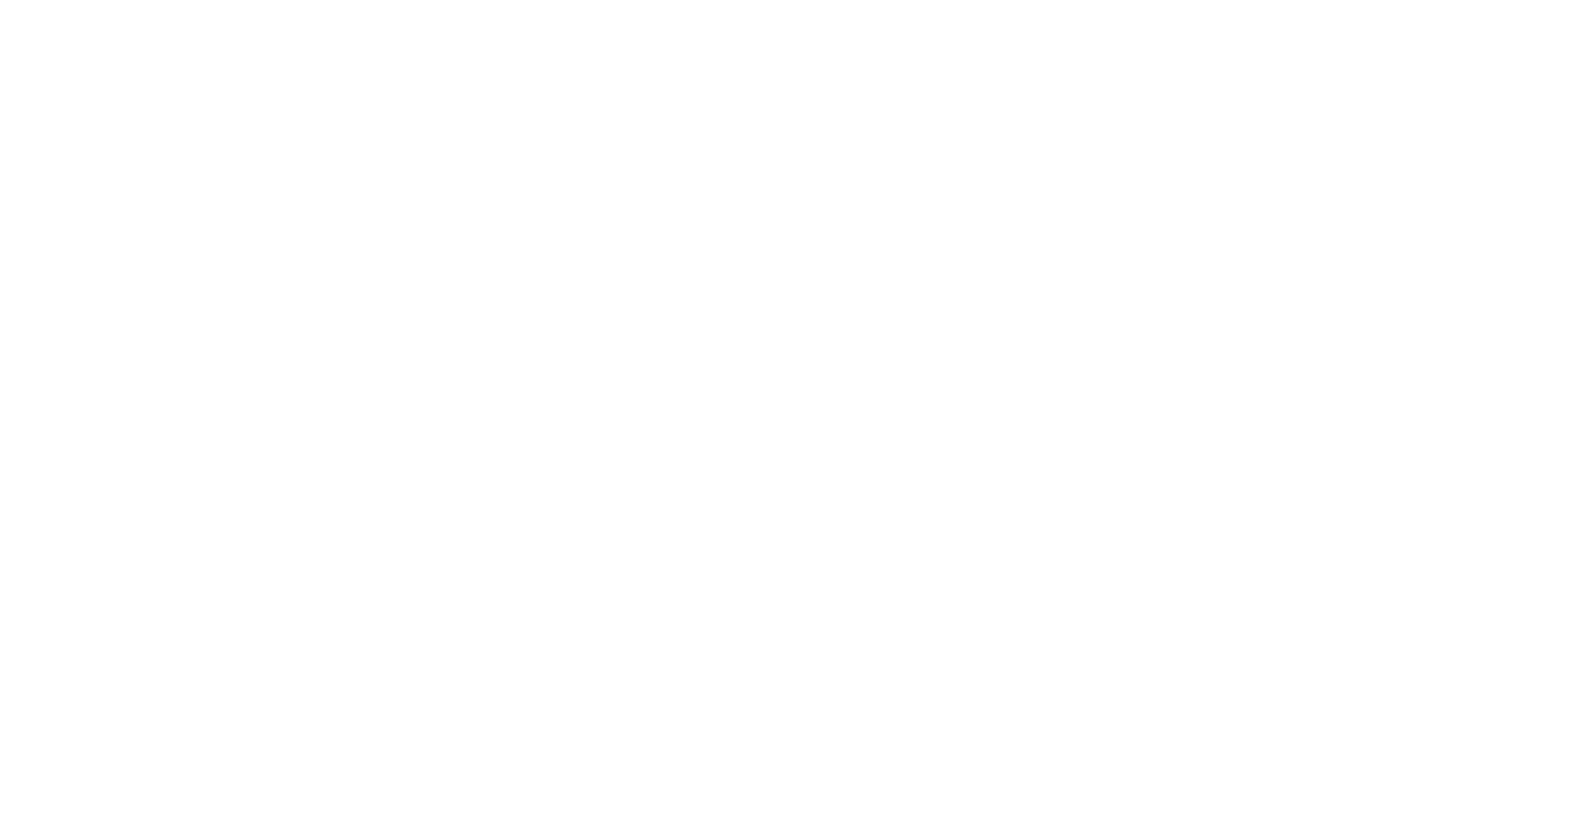 Kathys Custom Cleaning